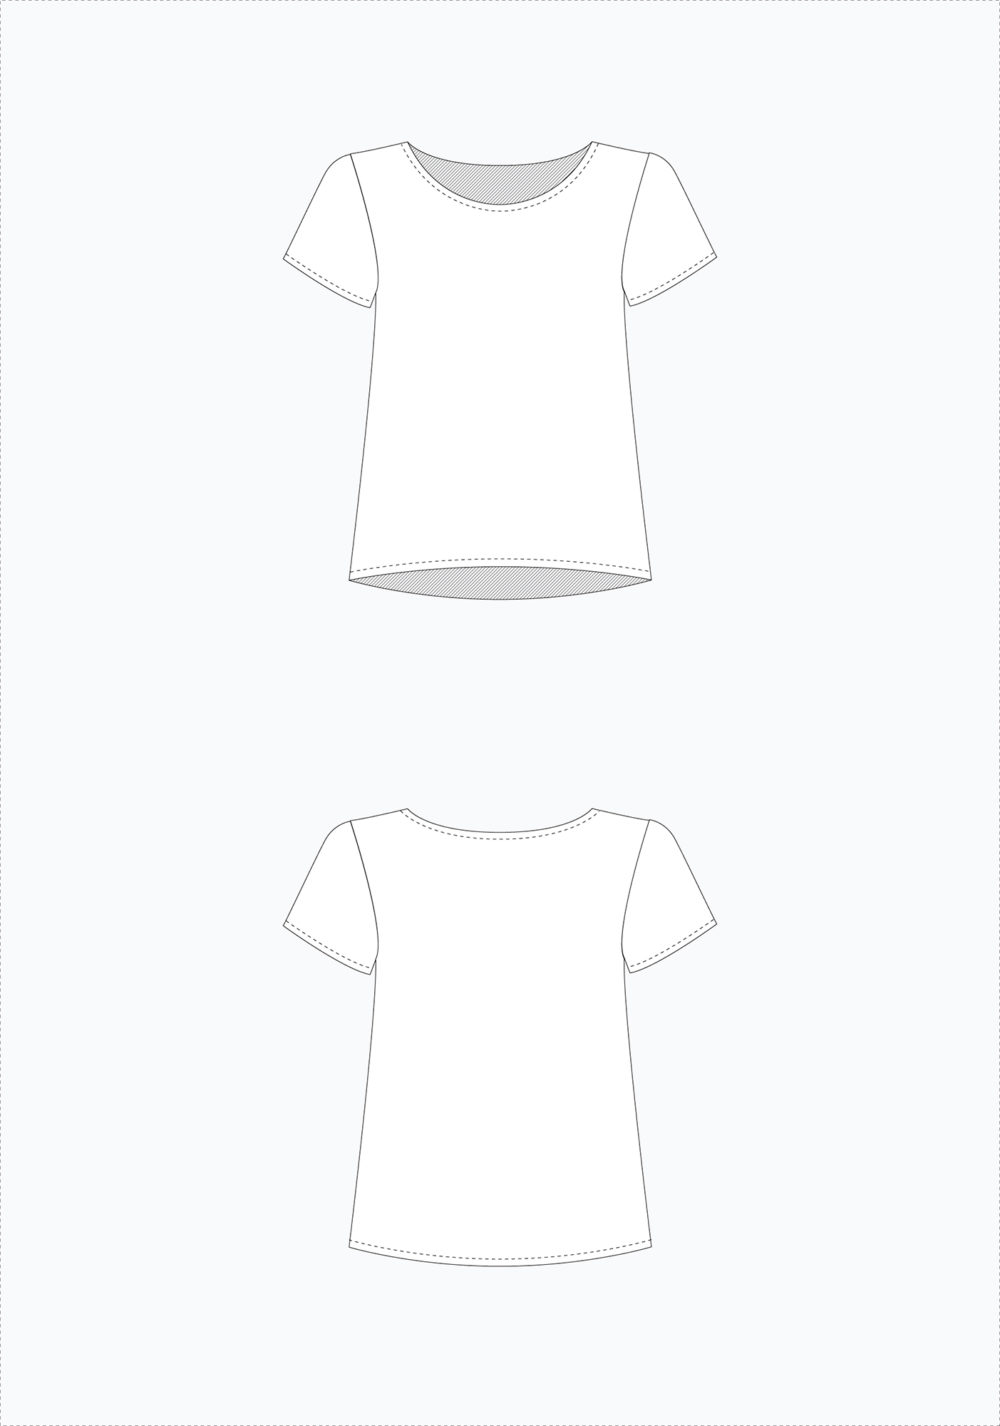 Scout Tee Pattern By Grainline Studio